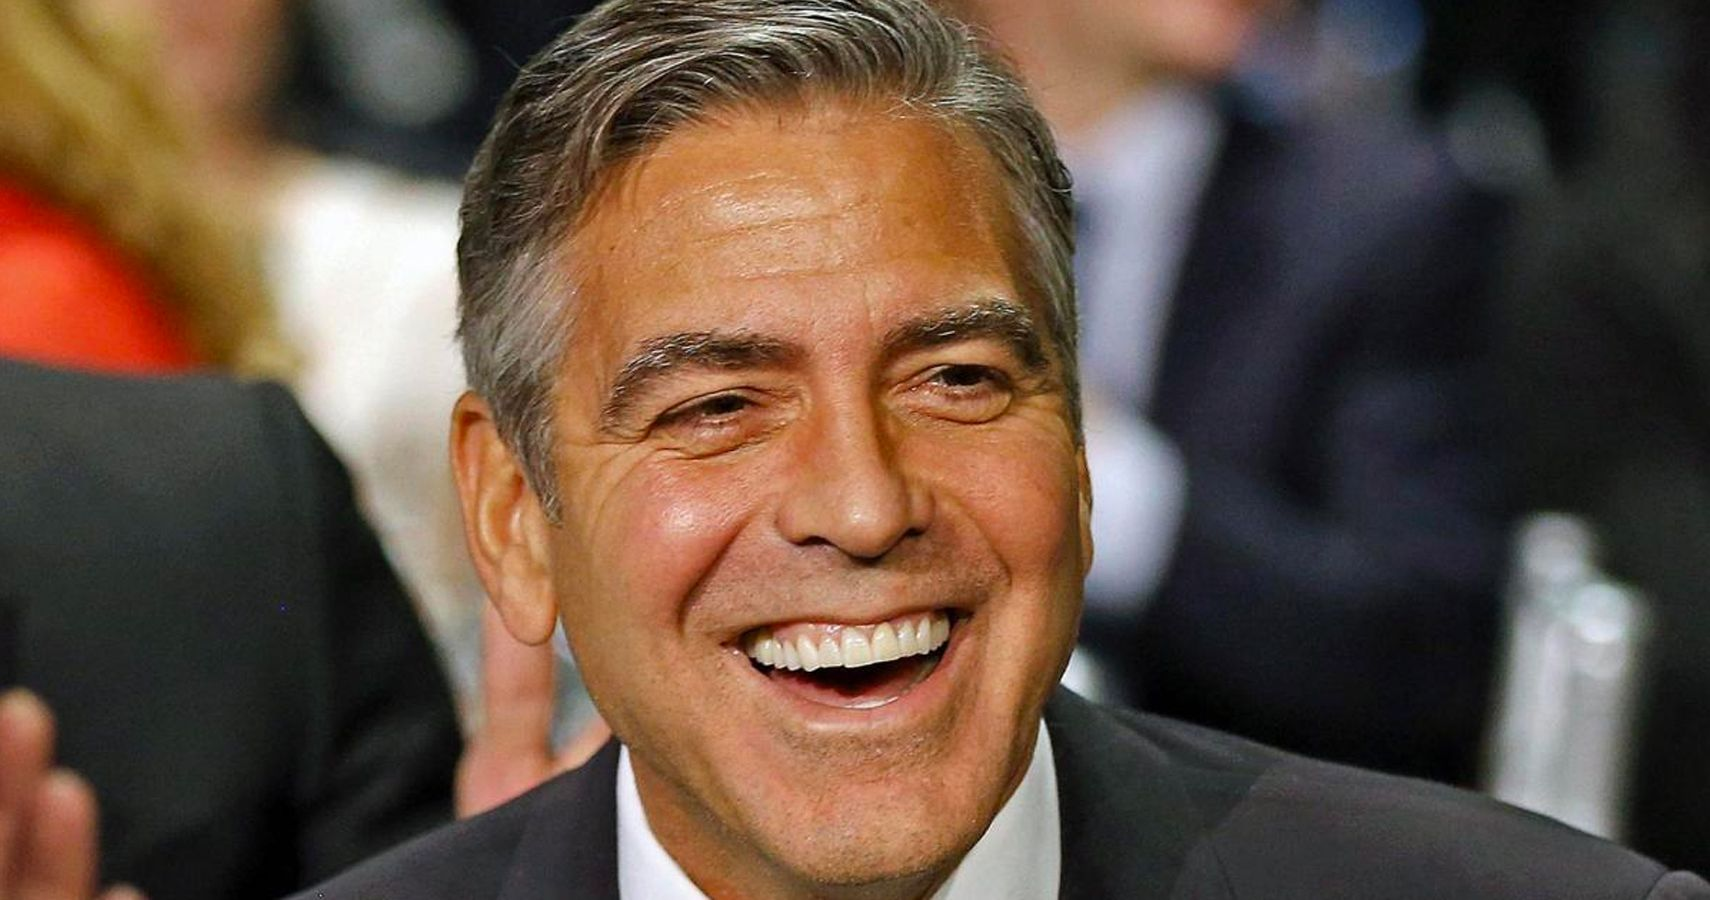 George Clooney Sells His Tequila Company For Big Money